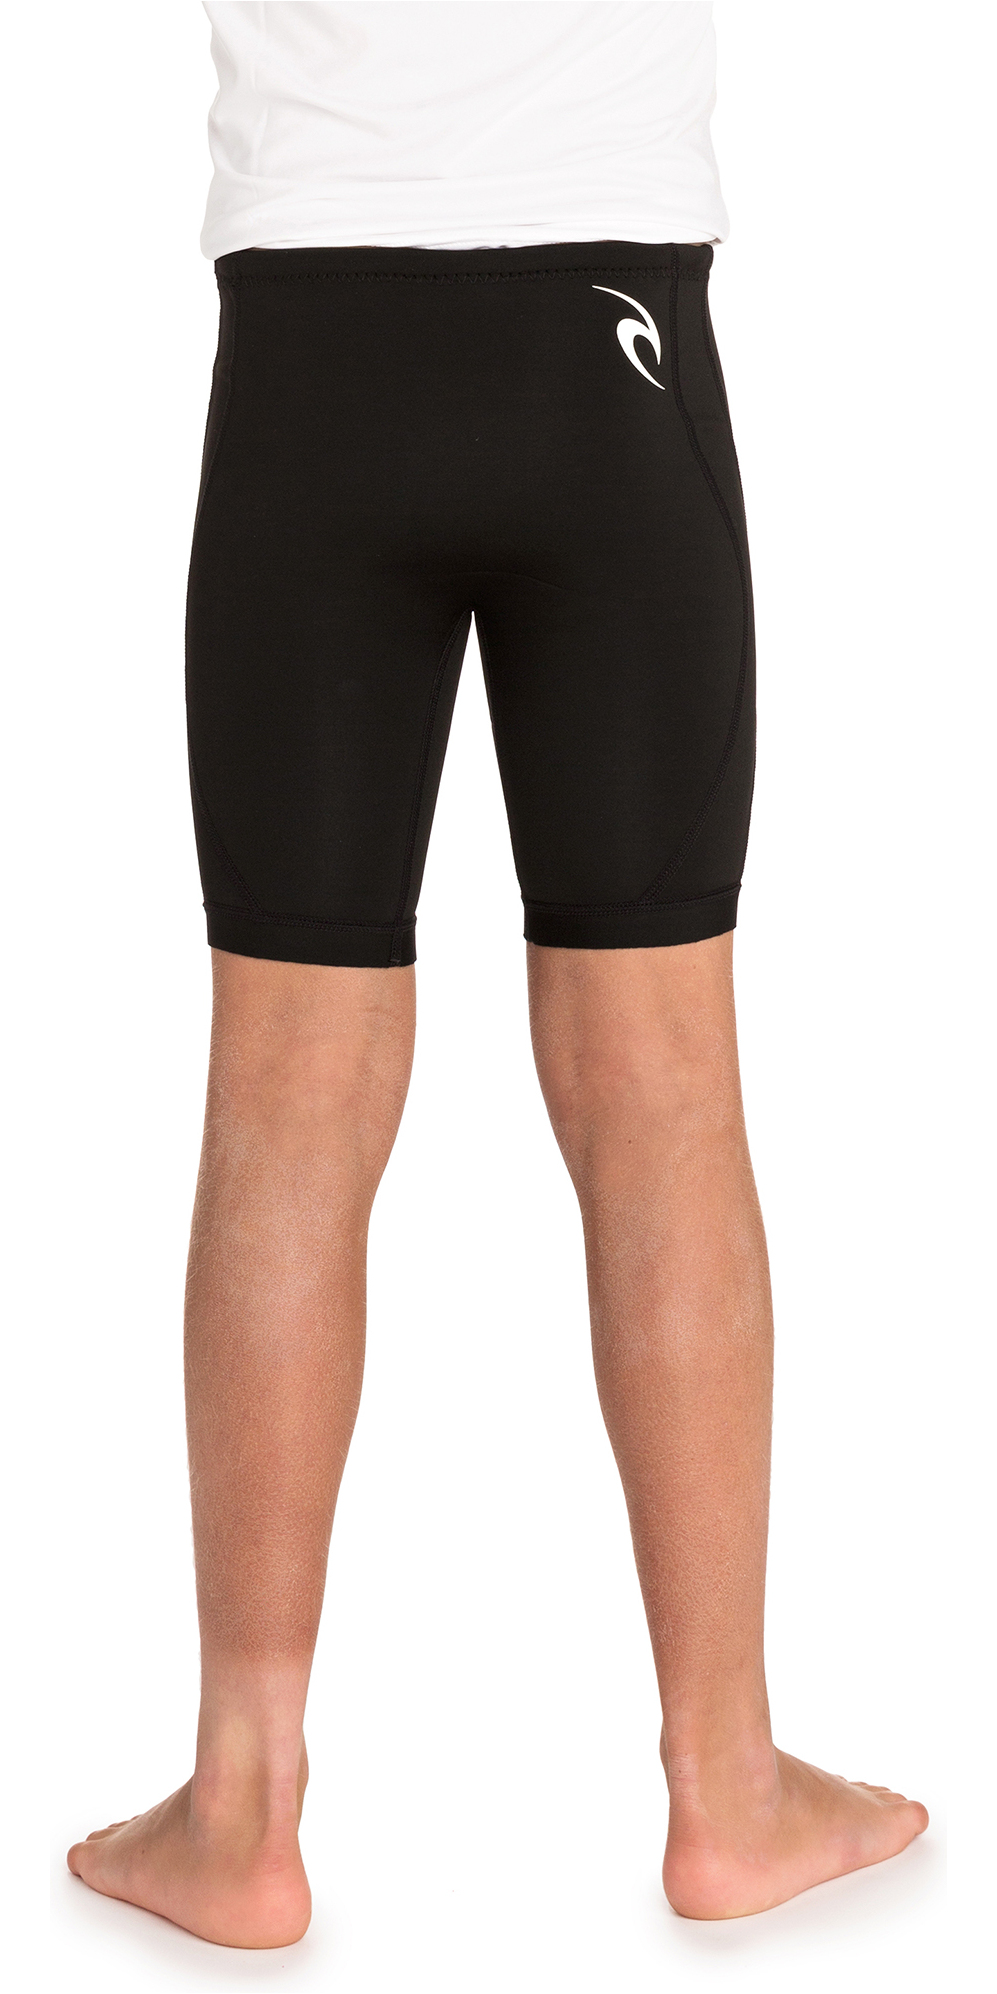 2020 Rip Curl JUNIOR 1mm Dawn Patrol Neoprene Shorts Black WSH5EB